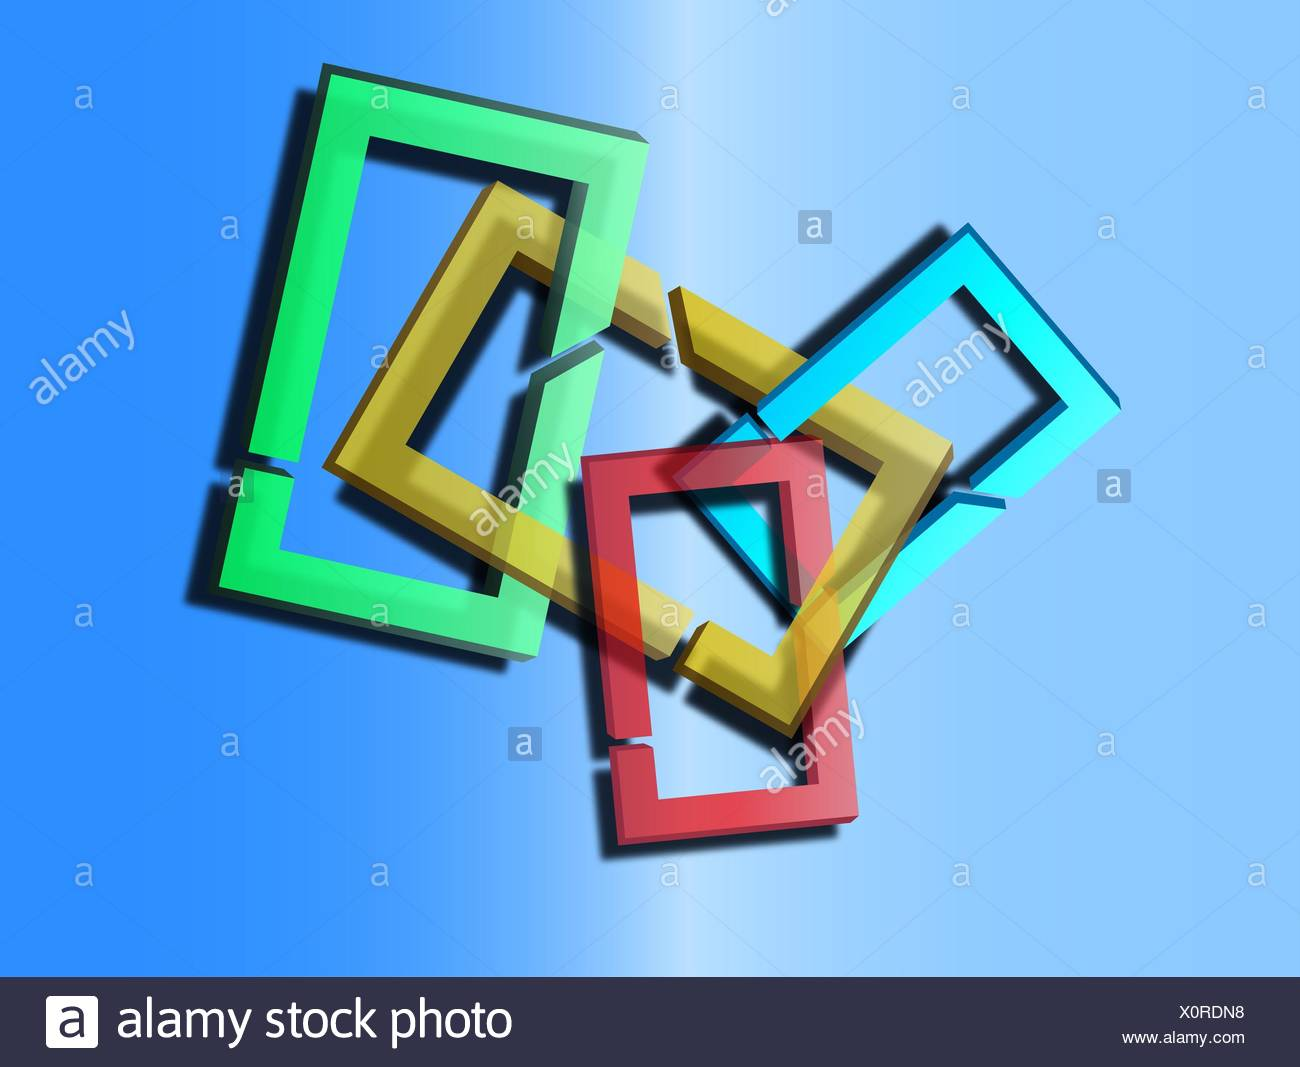 2d abstract illustration - Stock Image